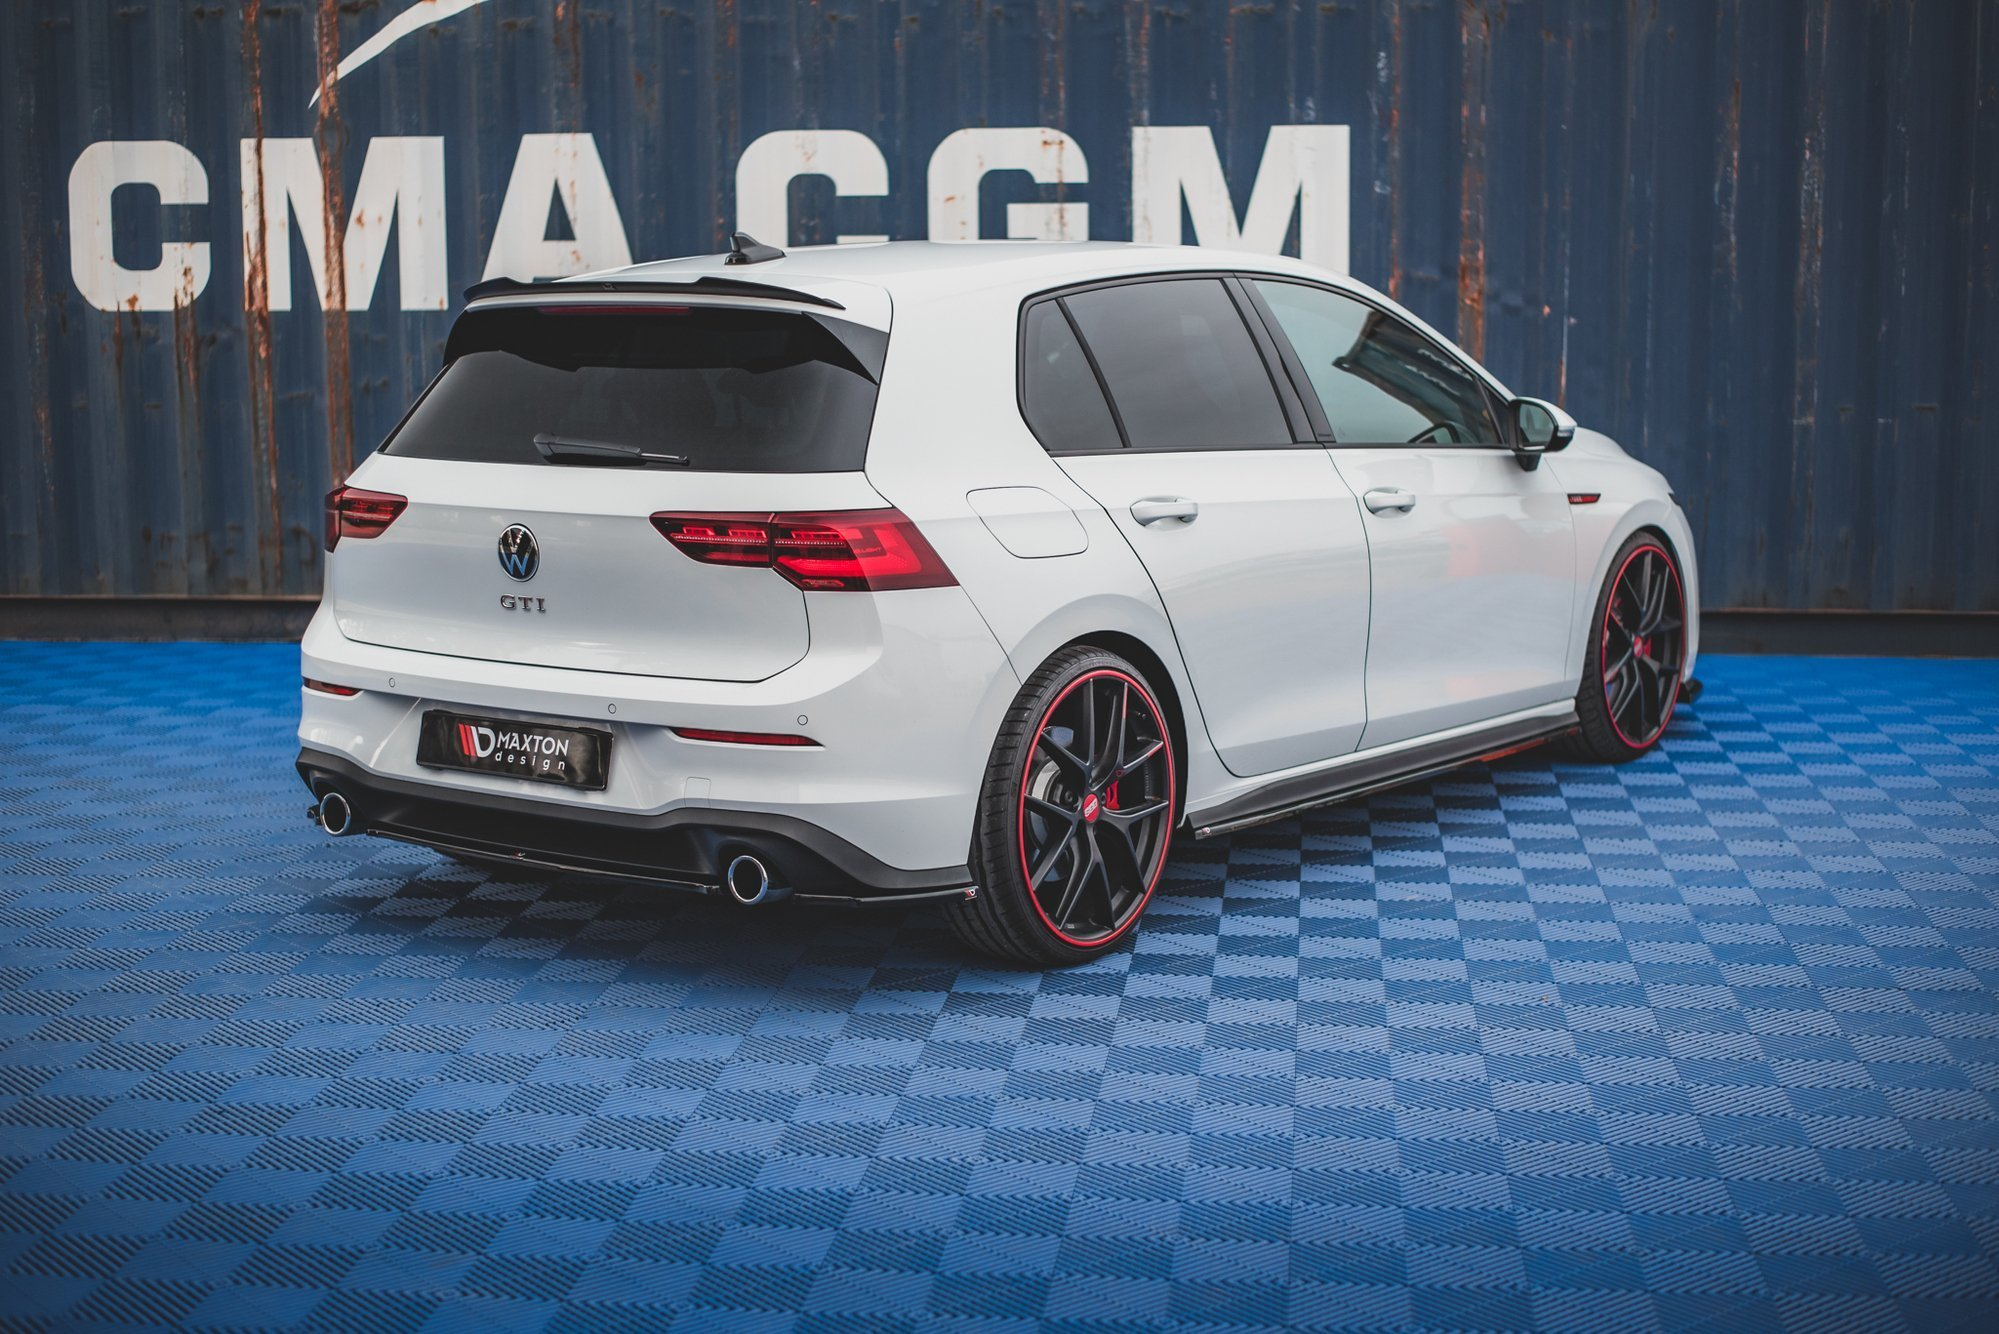 Spoiler Cap Volkswagen Golf 8 Gti Our Offer Volkswagen Golf Gti Mk8 Maxton Design